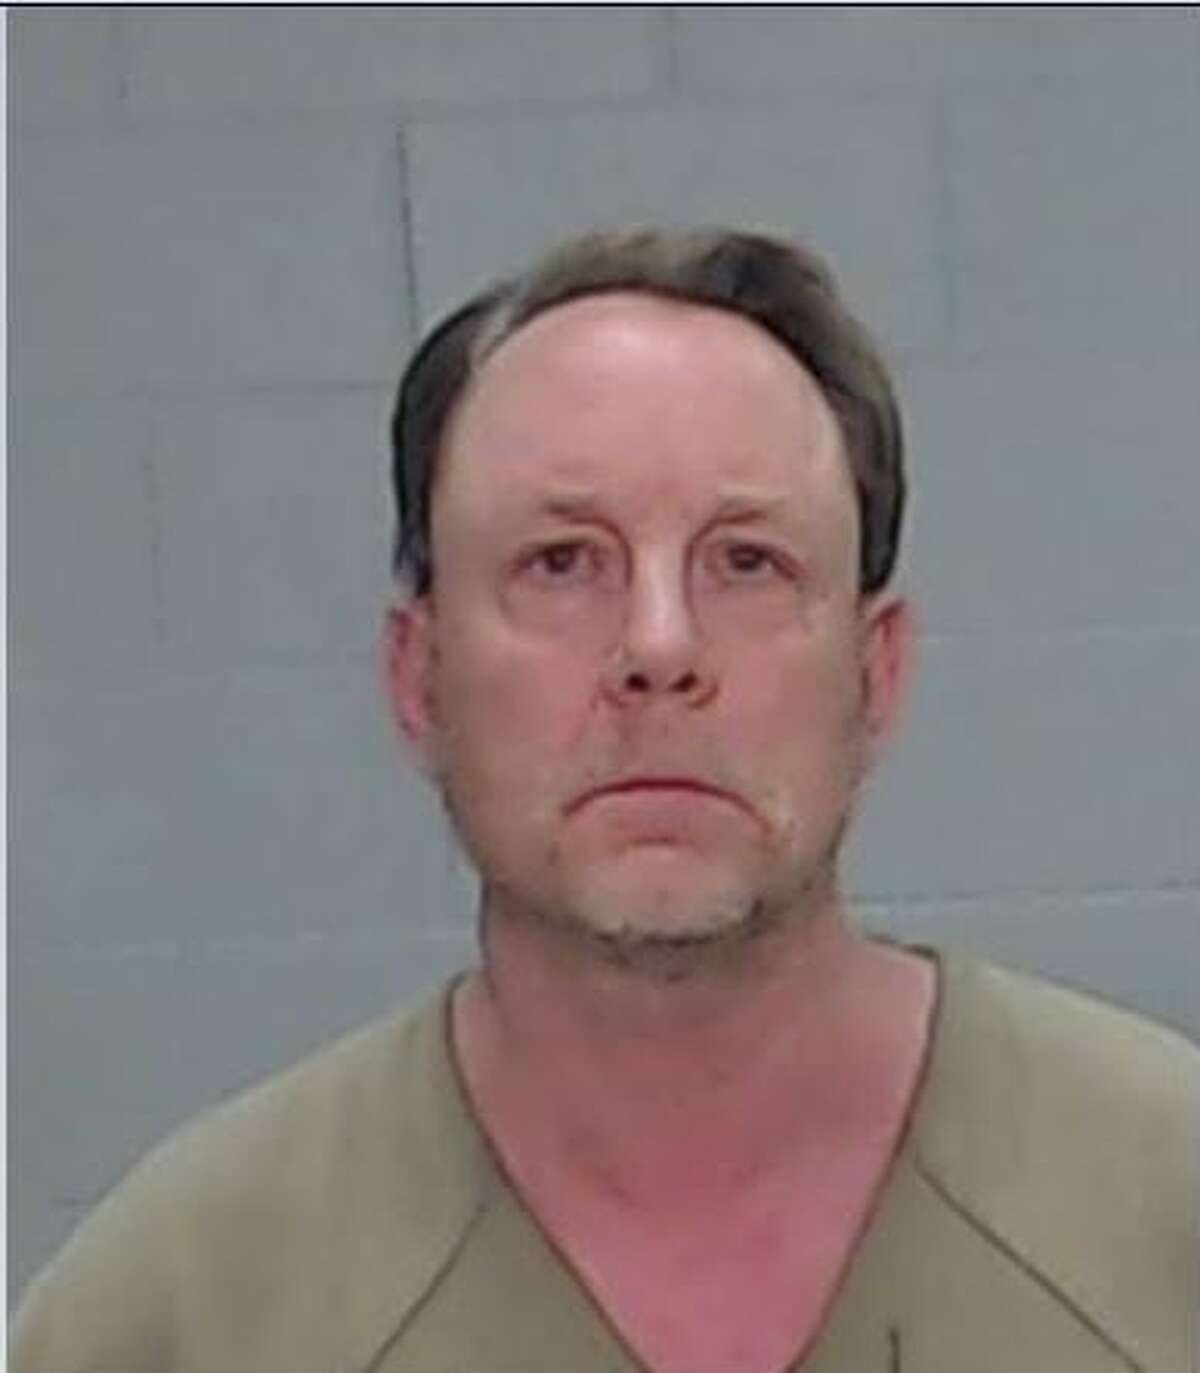 """William """"Cliff"""" Goble, a former Midland College professor, was found guilty and sentenced to 38 years in prison Thursday for the murder of David Young in 2019, according to the Ector County District Attorney's Office."""